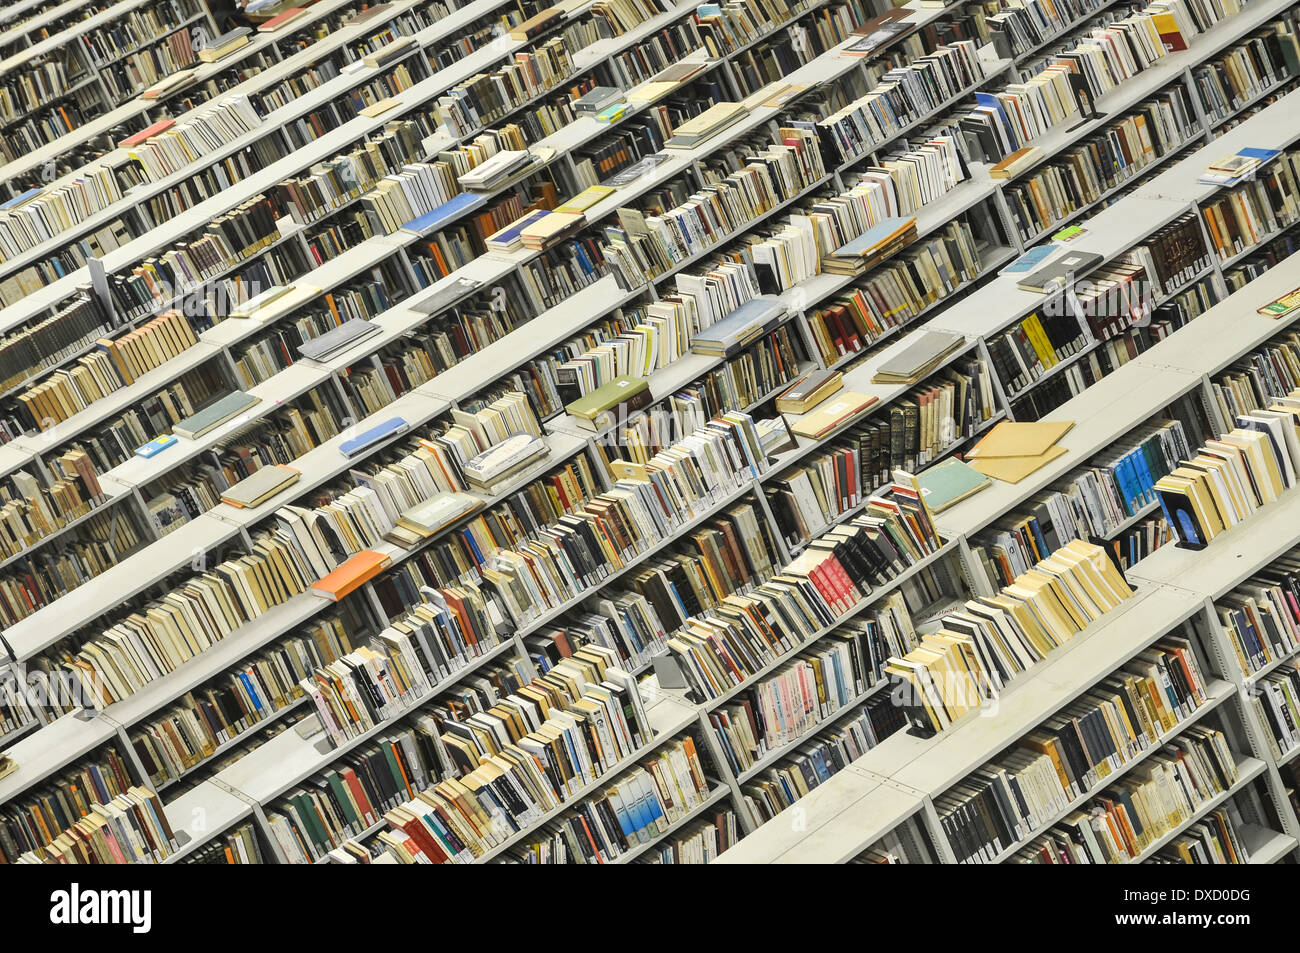 Books in a library - Stock Image